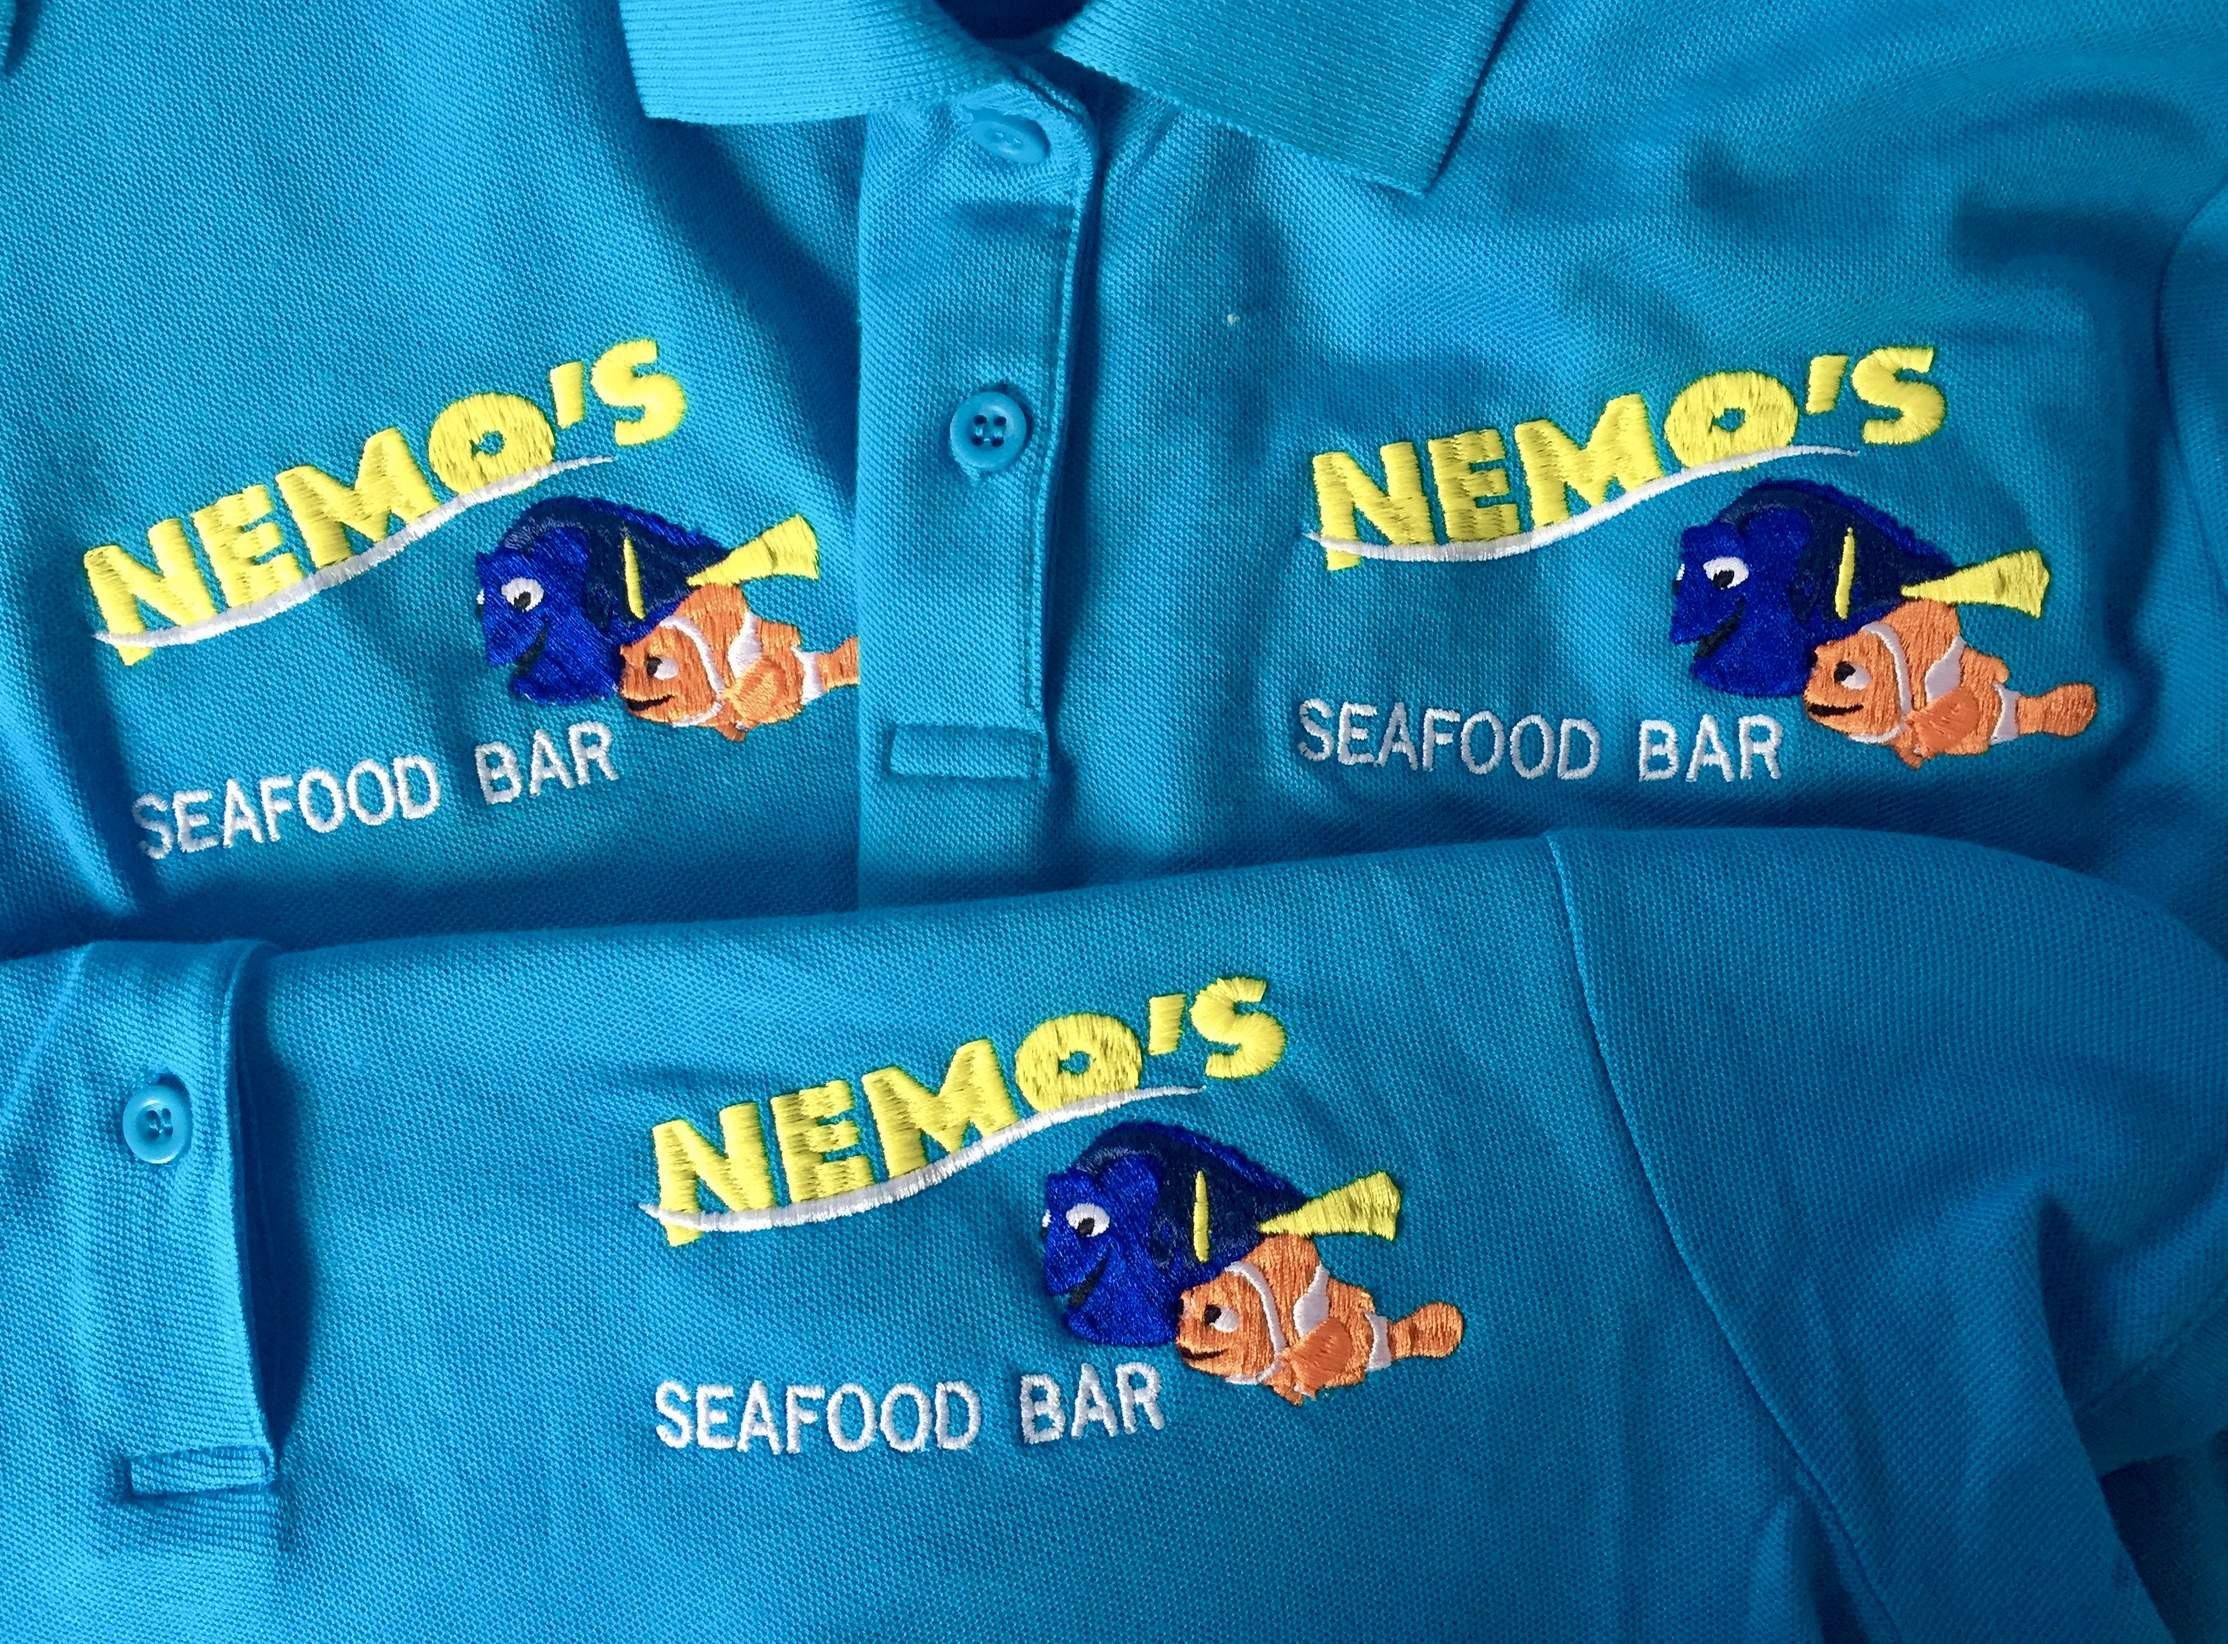 custom embroidery embroidered clothing uniform & workwear t-shirts polos hoodies jackets hats badges & embroidery machine designs clacton essex uk